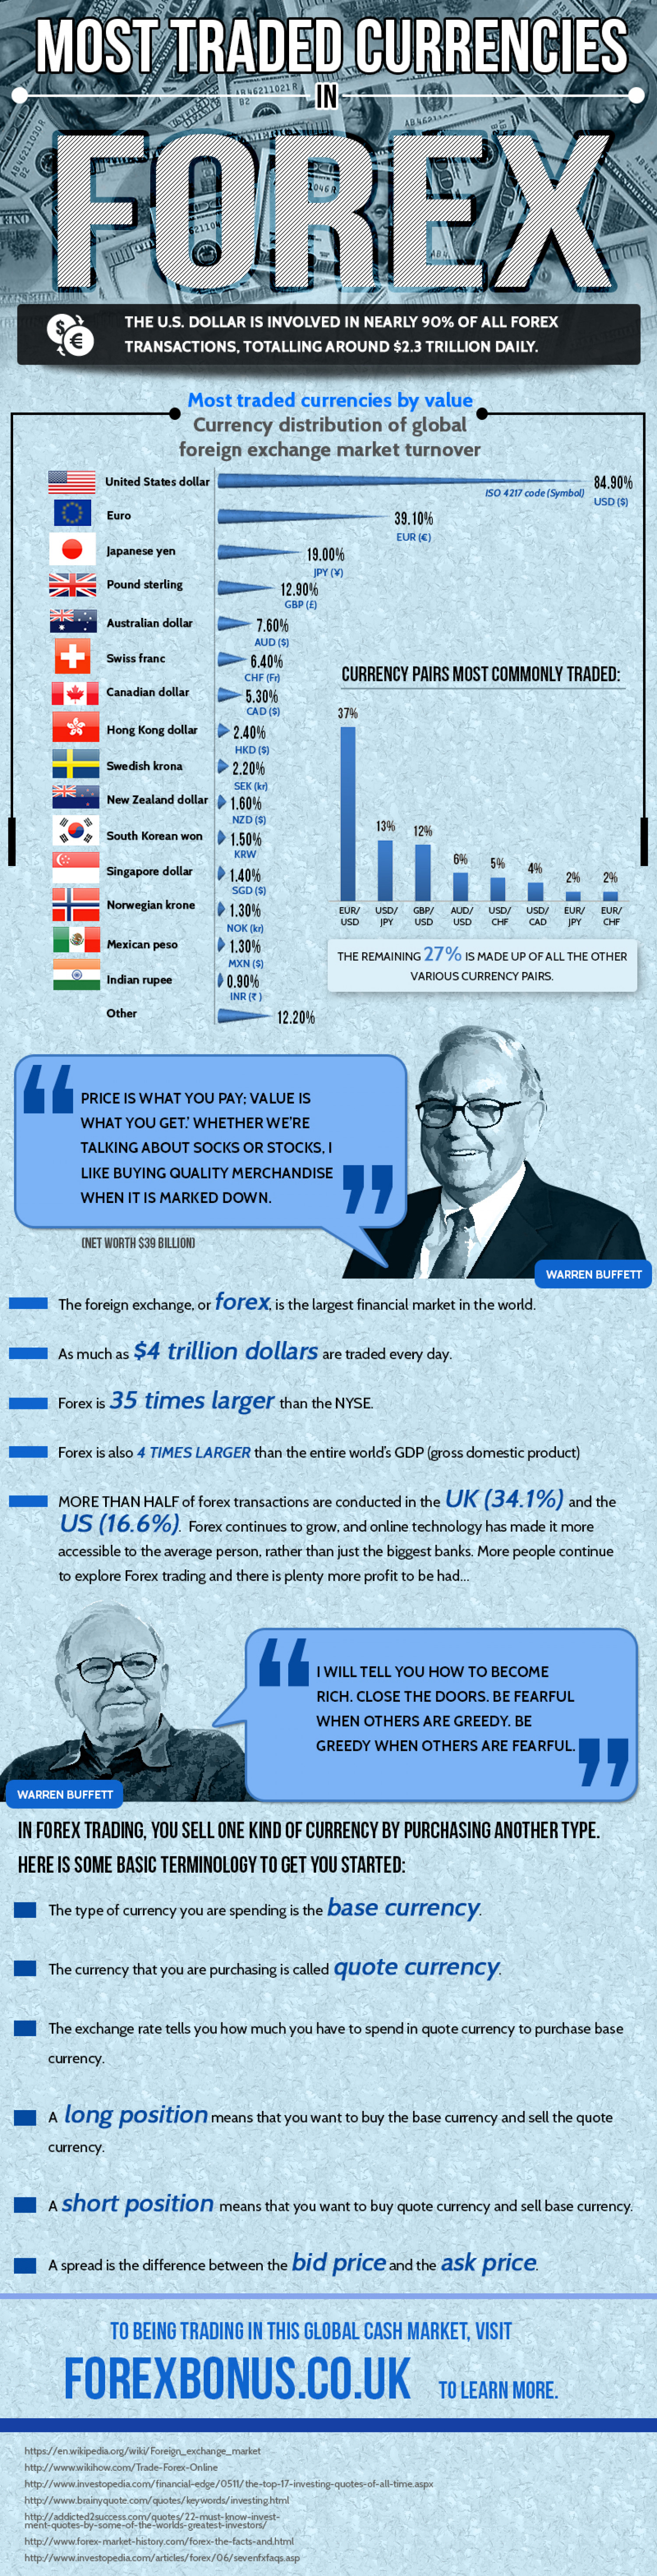 Most Traded Currencies in FOREX Infographic